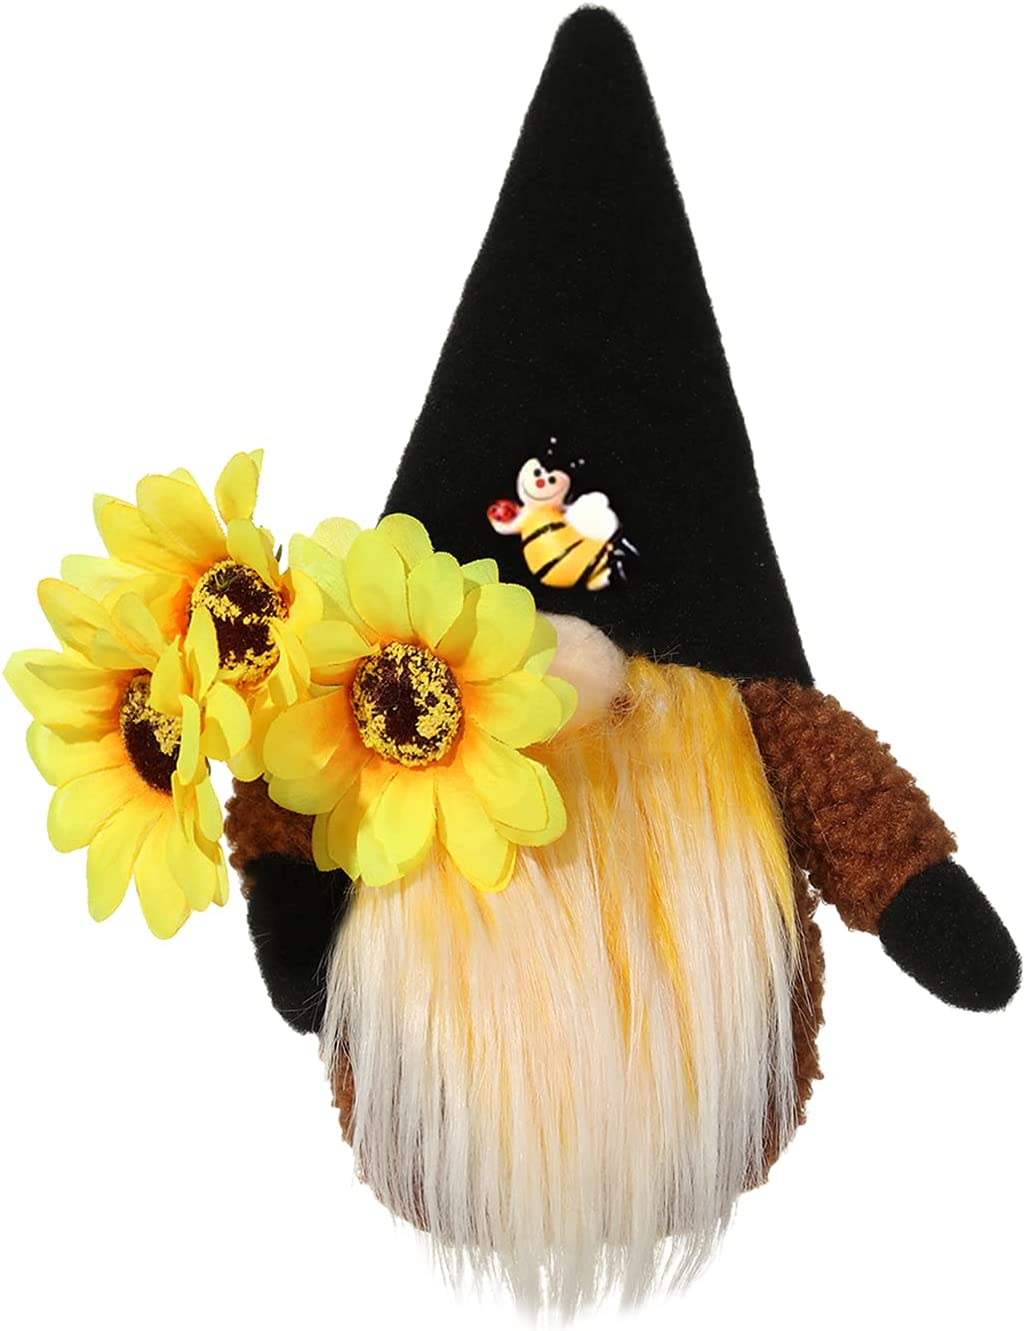 Sunflower Bee Gnomes, Faceless Plush Elf Decoration with Sunflower Hat & Bee, Spring Summer Honeybee Dwarf Figurine Ornaments for Holiday Party Bee Festival Home Decorations